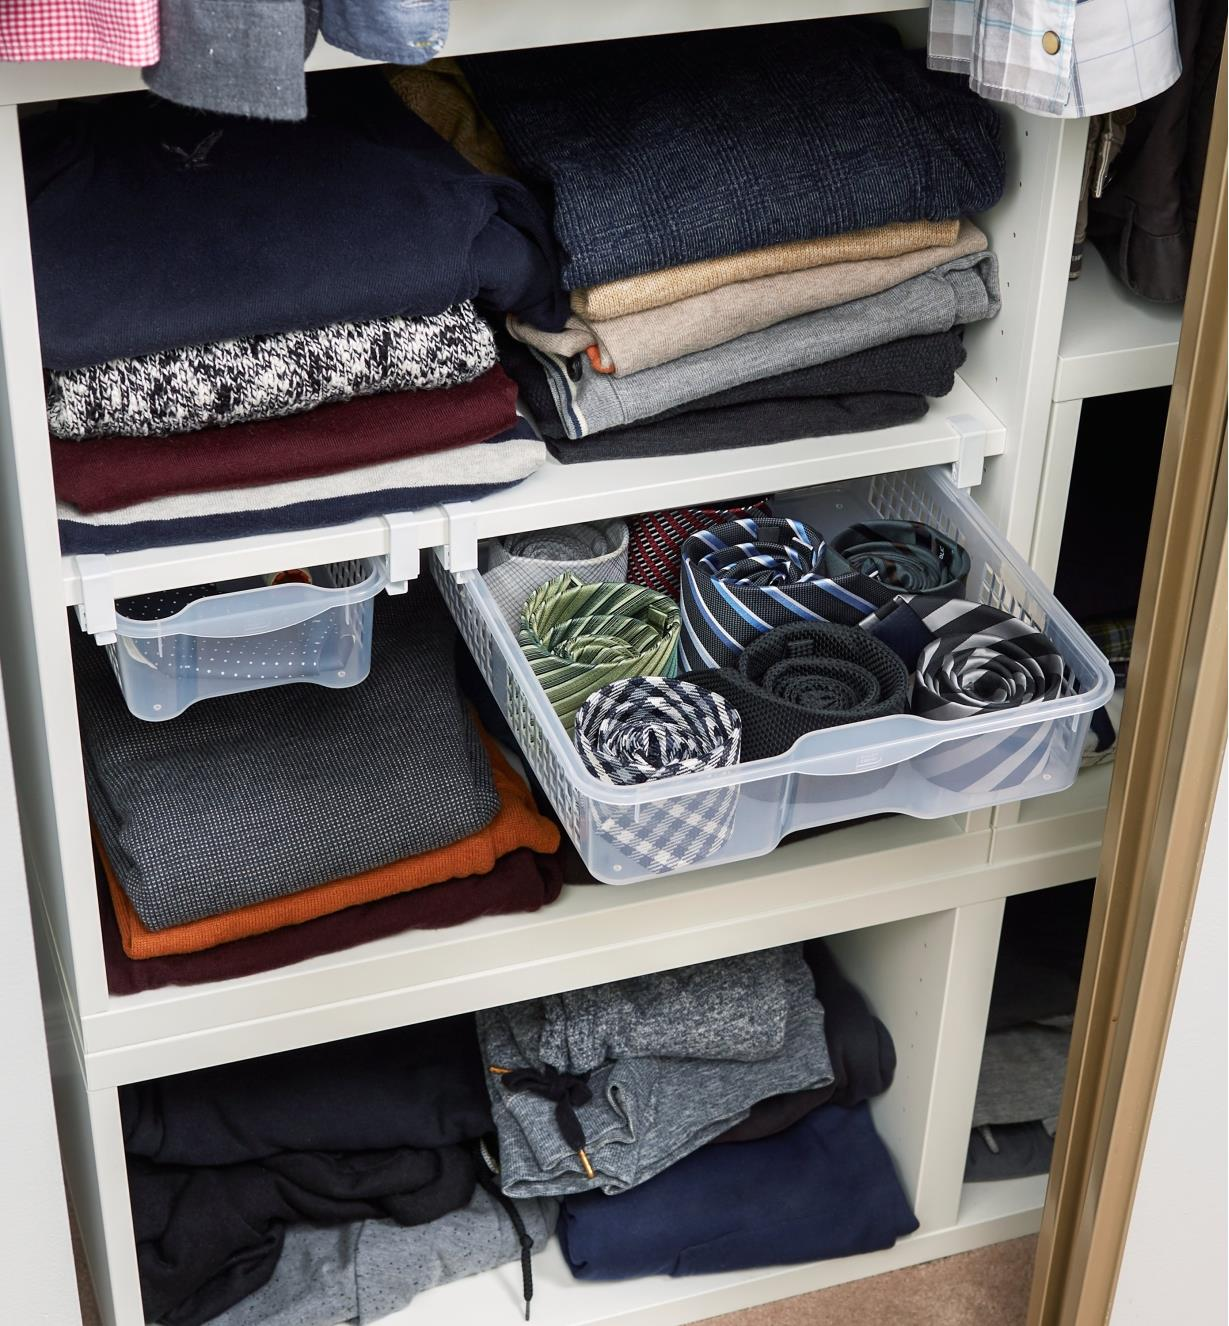 Hanging drawers installed in a closet, holding neckties